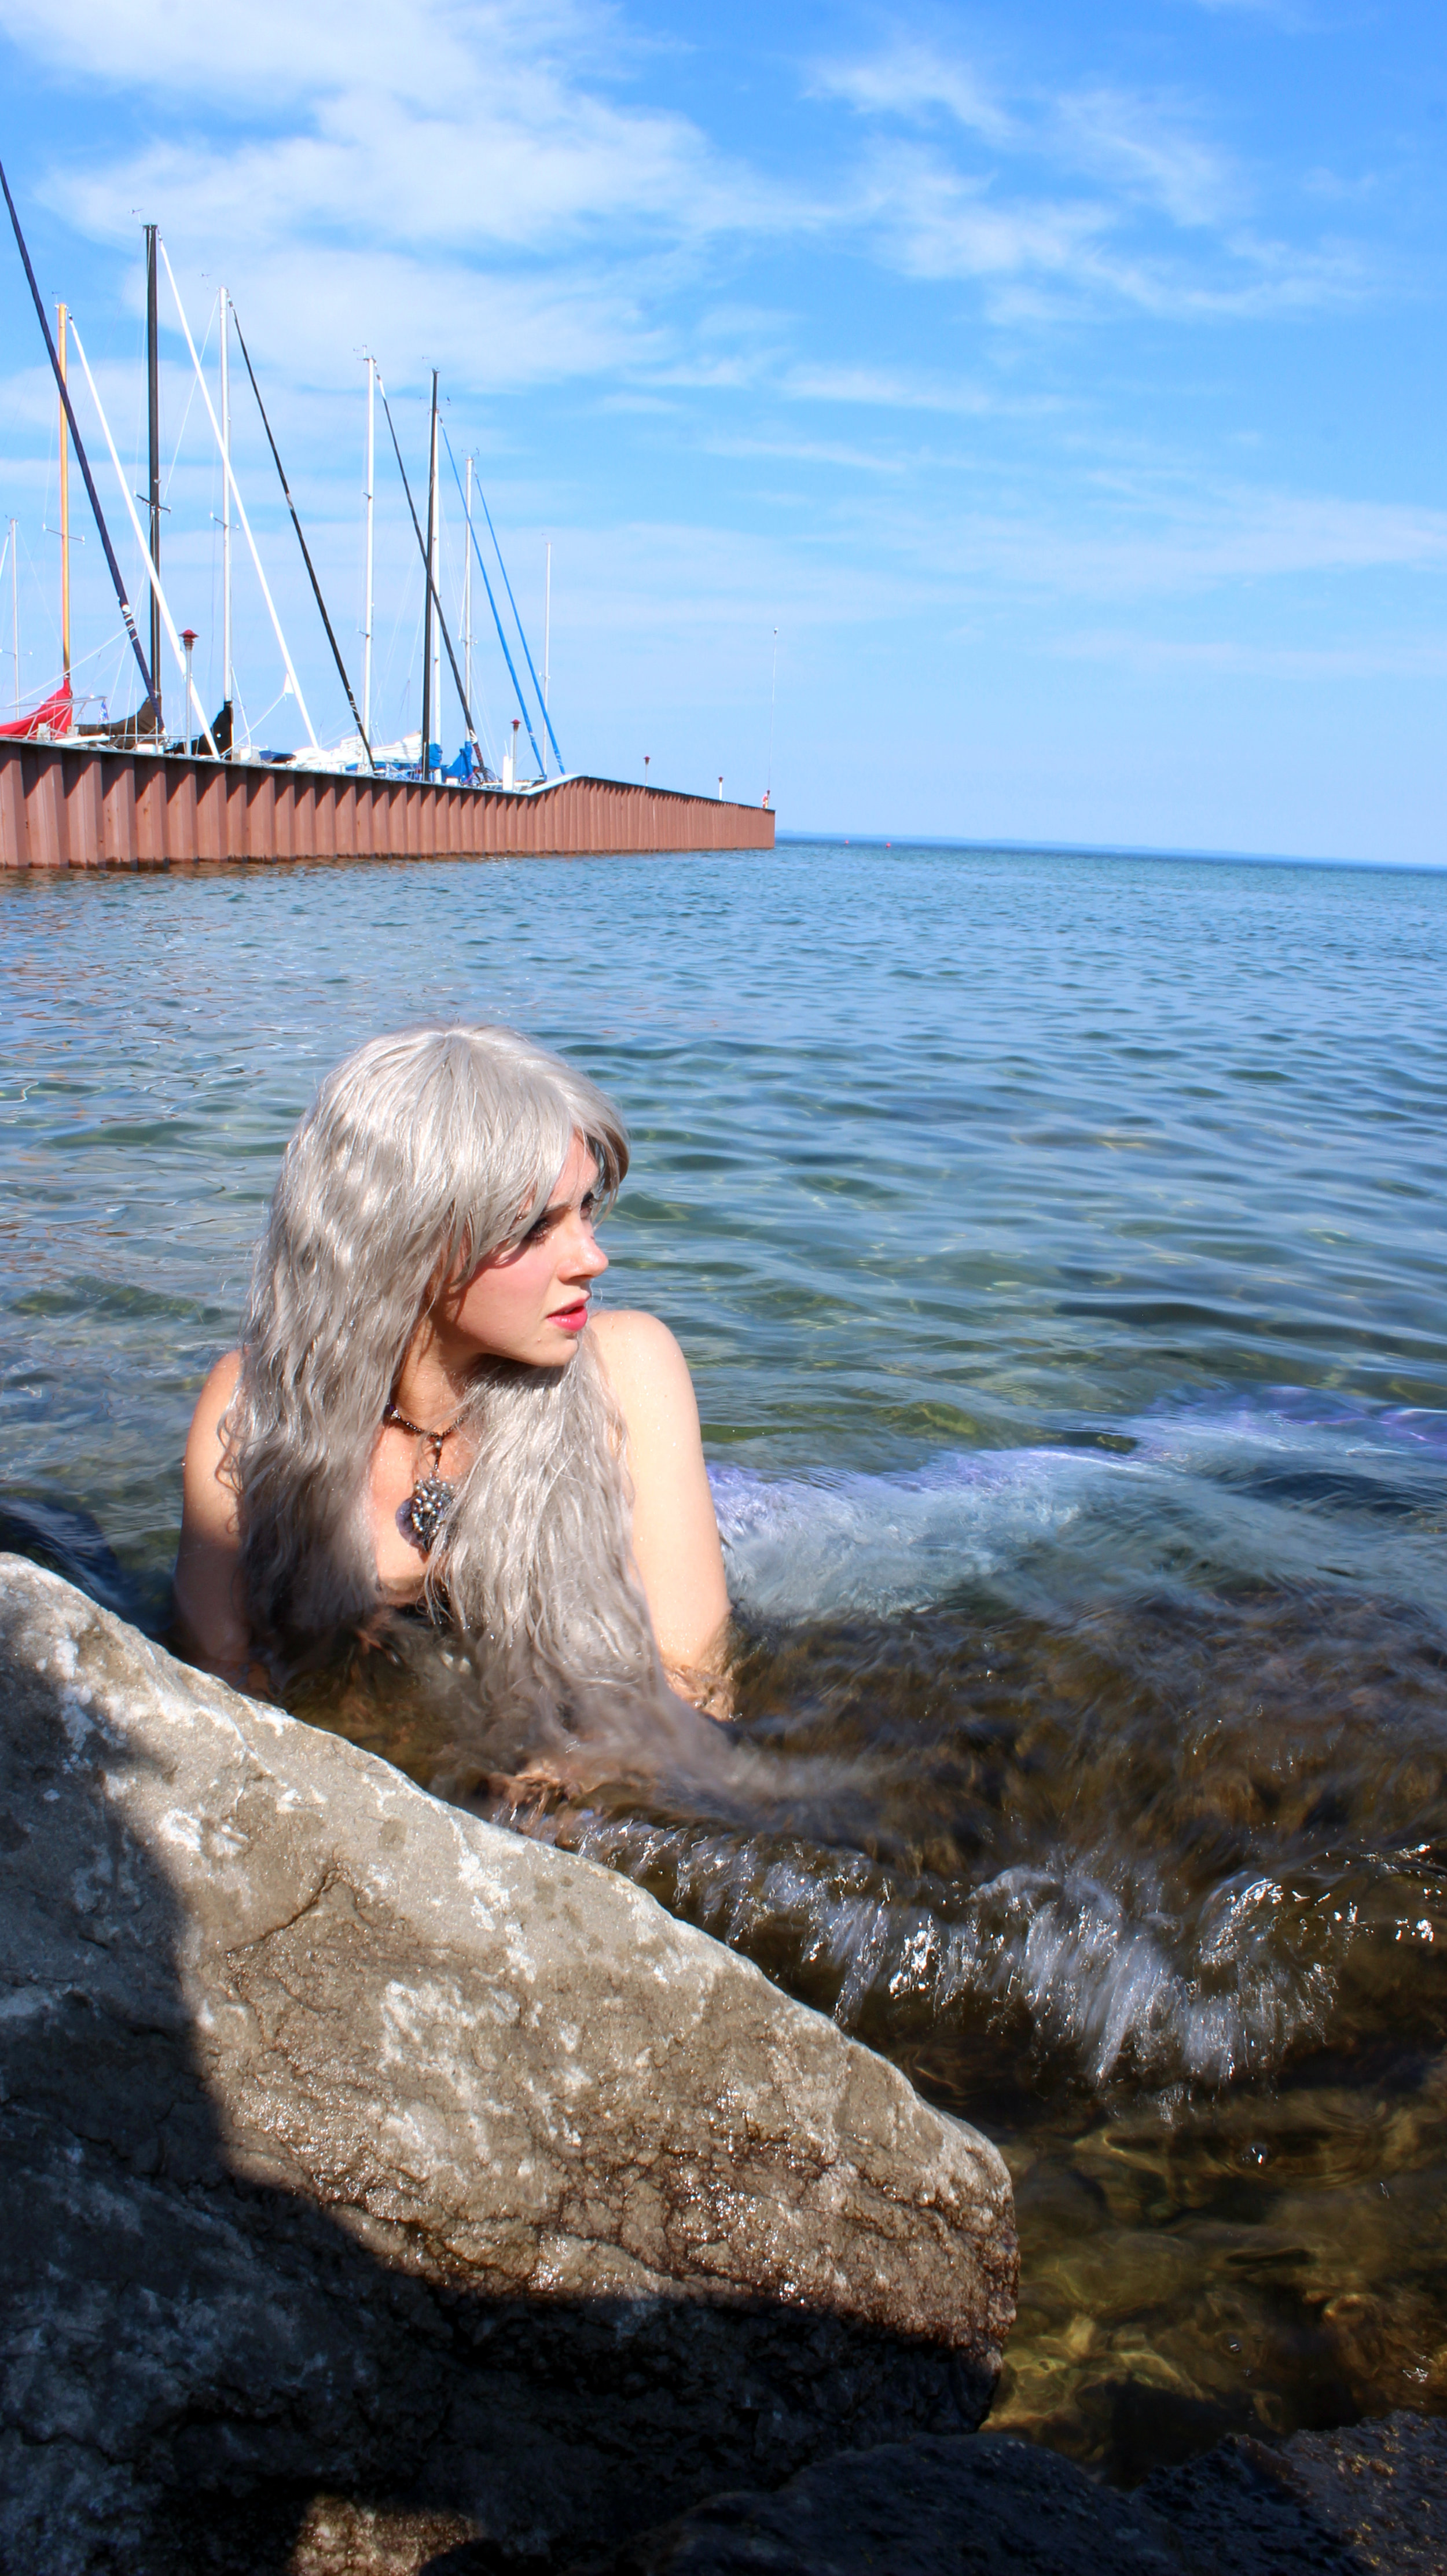 Mermaid Phanton, one of Lake Michigan's mermaids oftentimes comes up to the rocky shoreline near the docks at Northport's Marina. Here she can be seen gazing out into the distance.